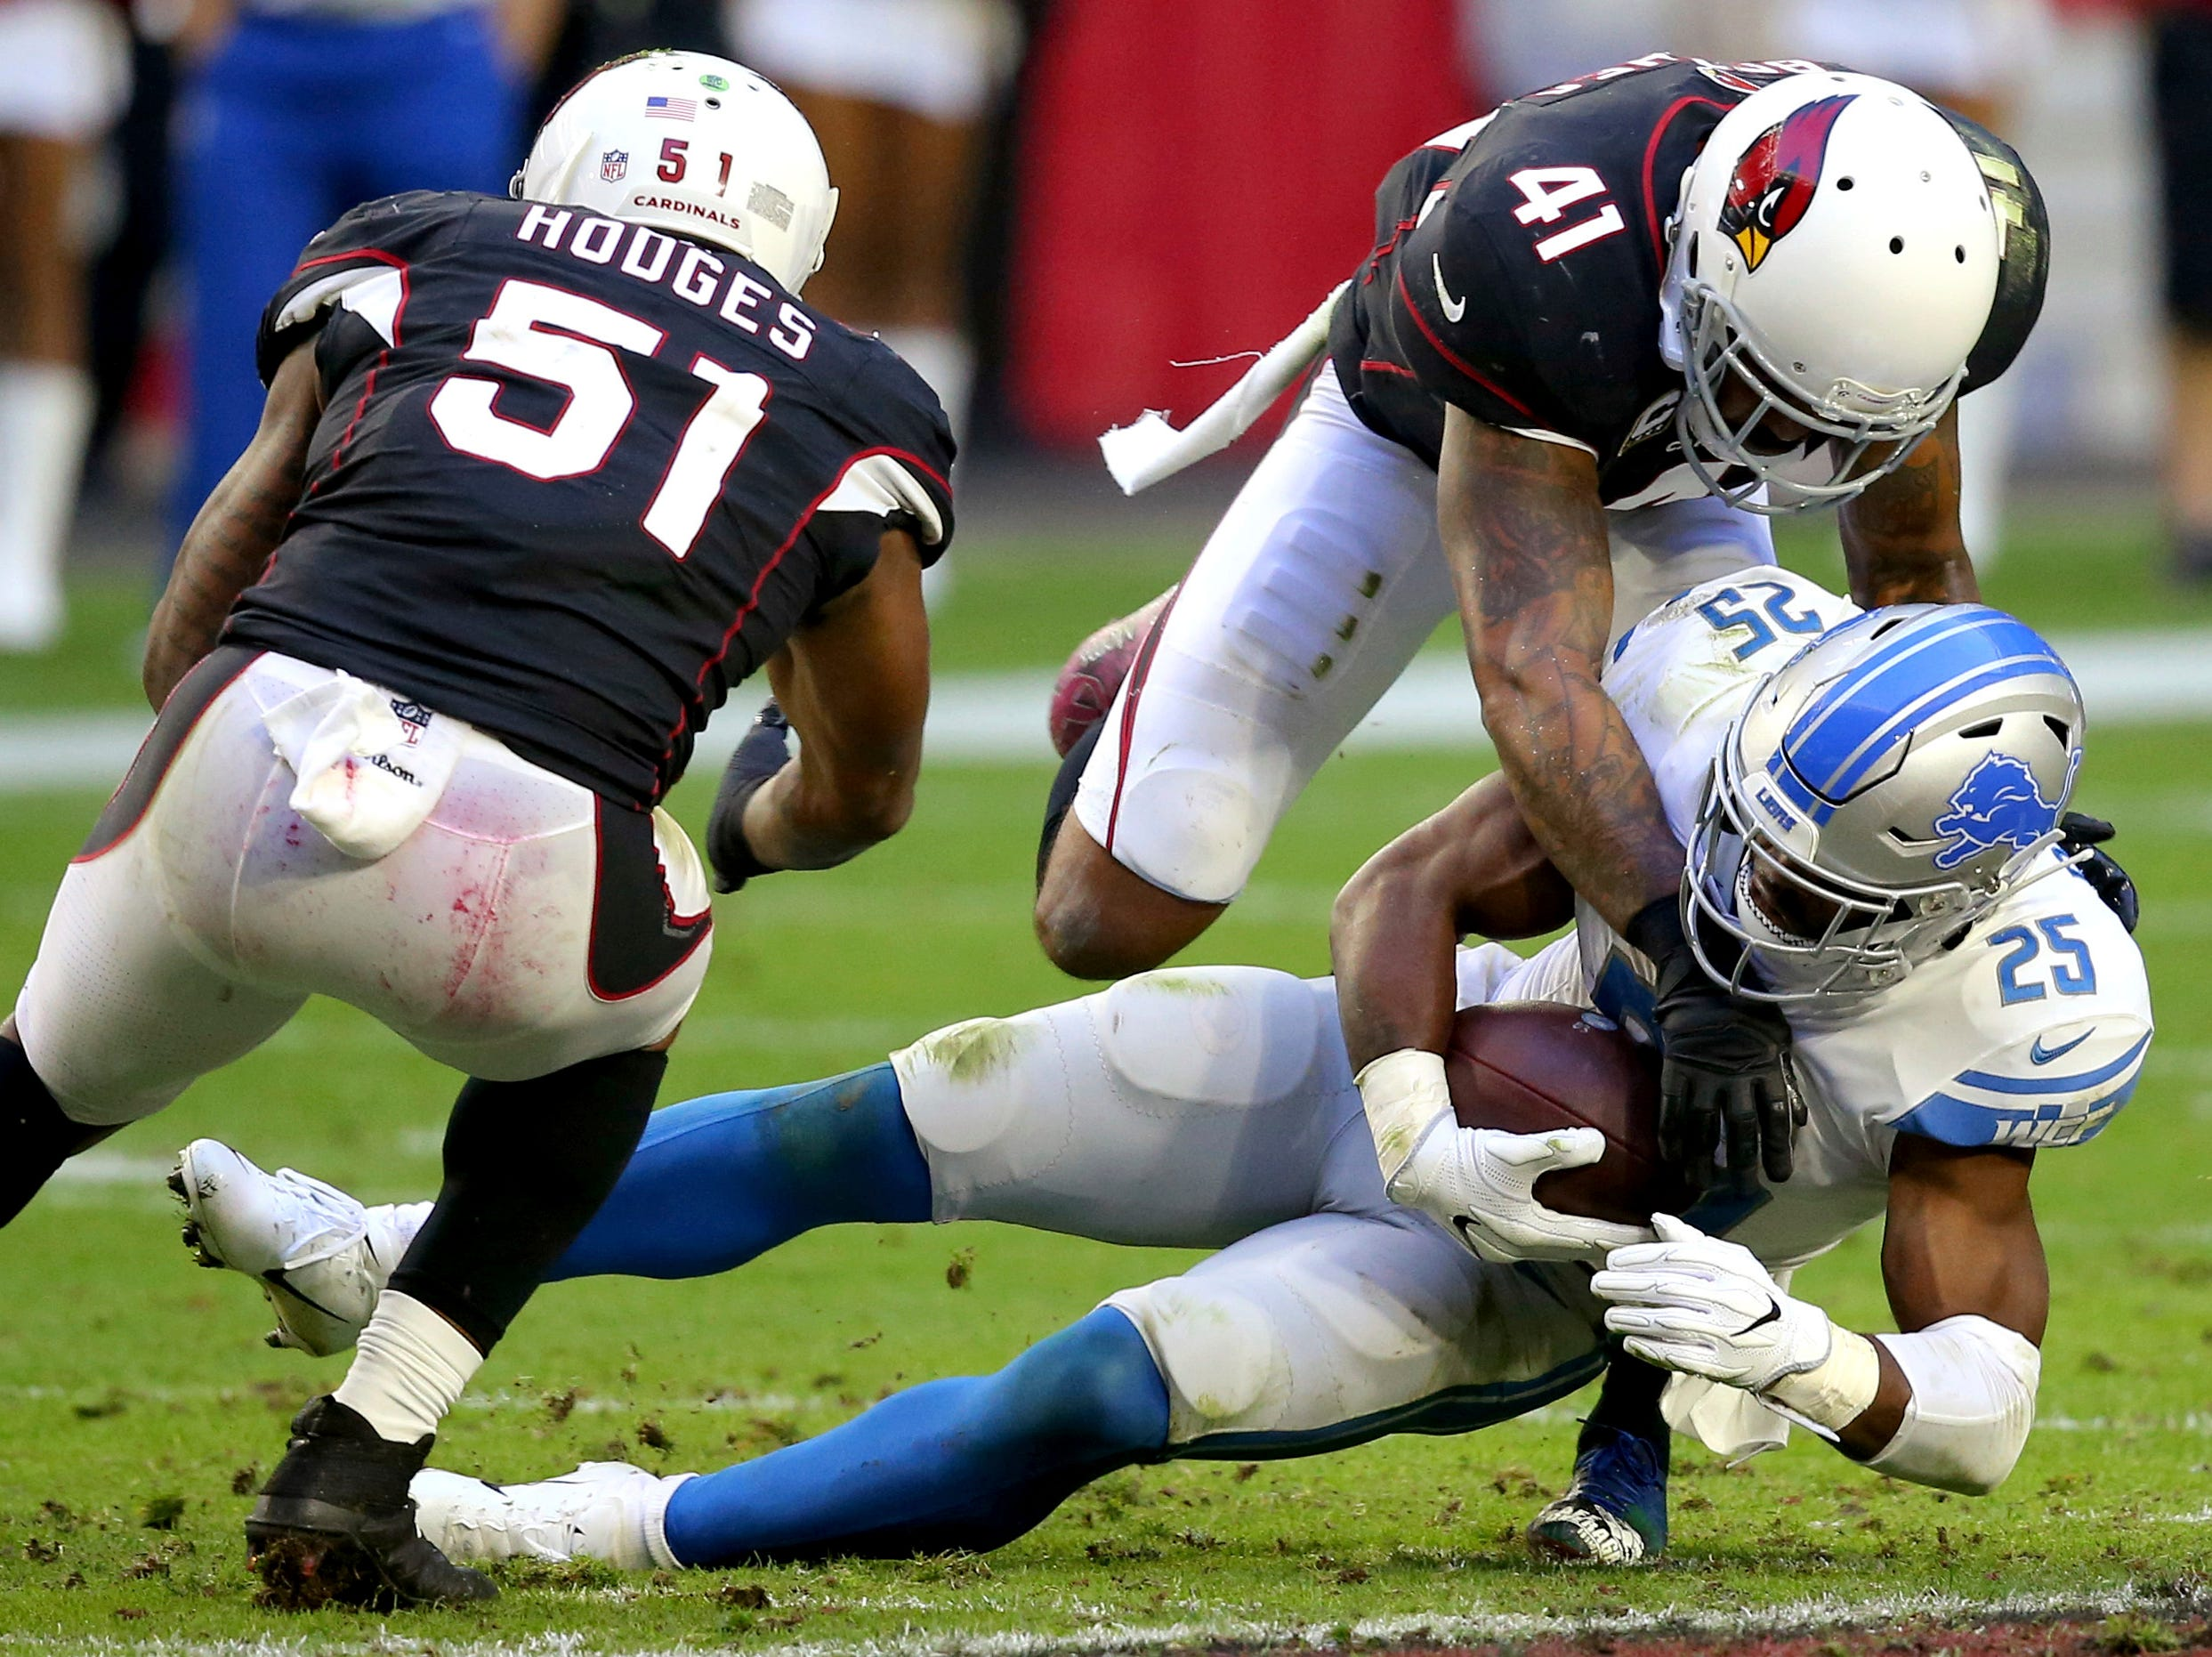 Detroit Lions running back Theo Riddick (25) is hit by Arizona Cardinals free safety Antoine Bethea (41) as linebacker Gerald Hodges (51) pursues during the second half.